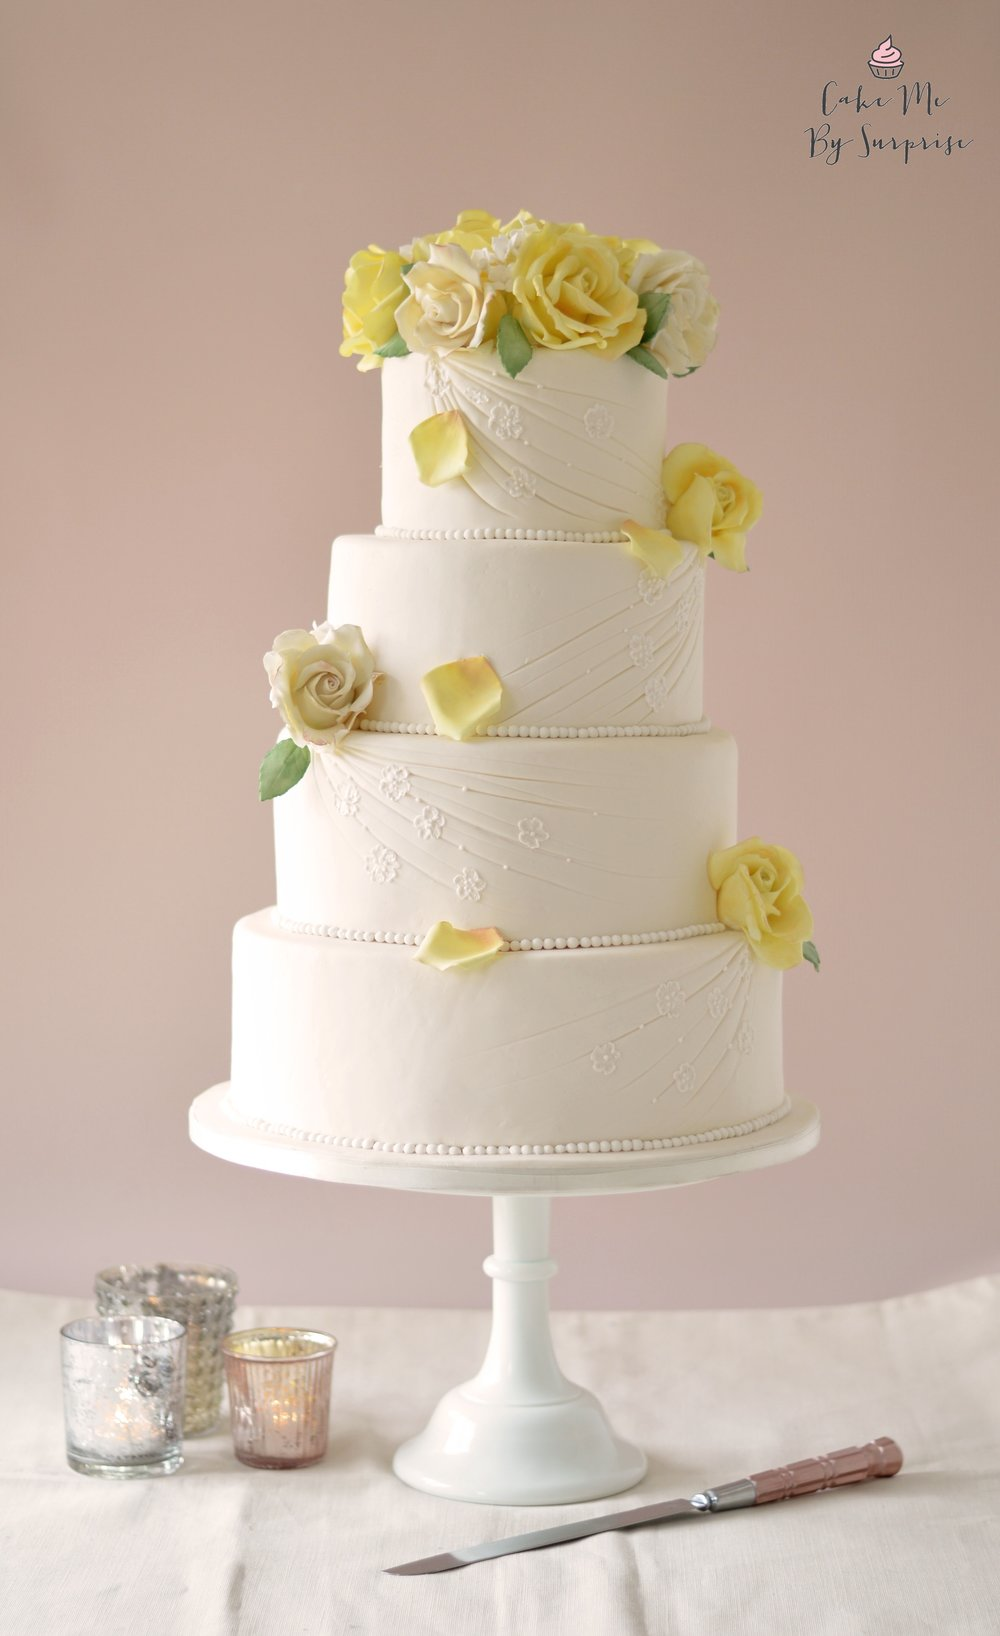 Golden Celebration - Yellow Rose Wedding Cake A four tier elegant wedding cake, finished with handcrafted yellow and white roses. Serves 200 £700